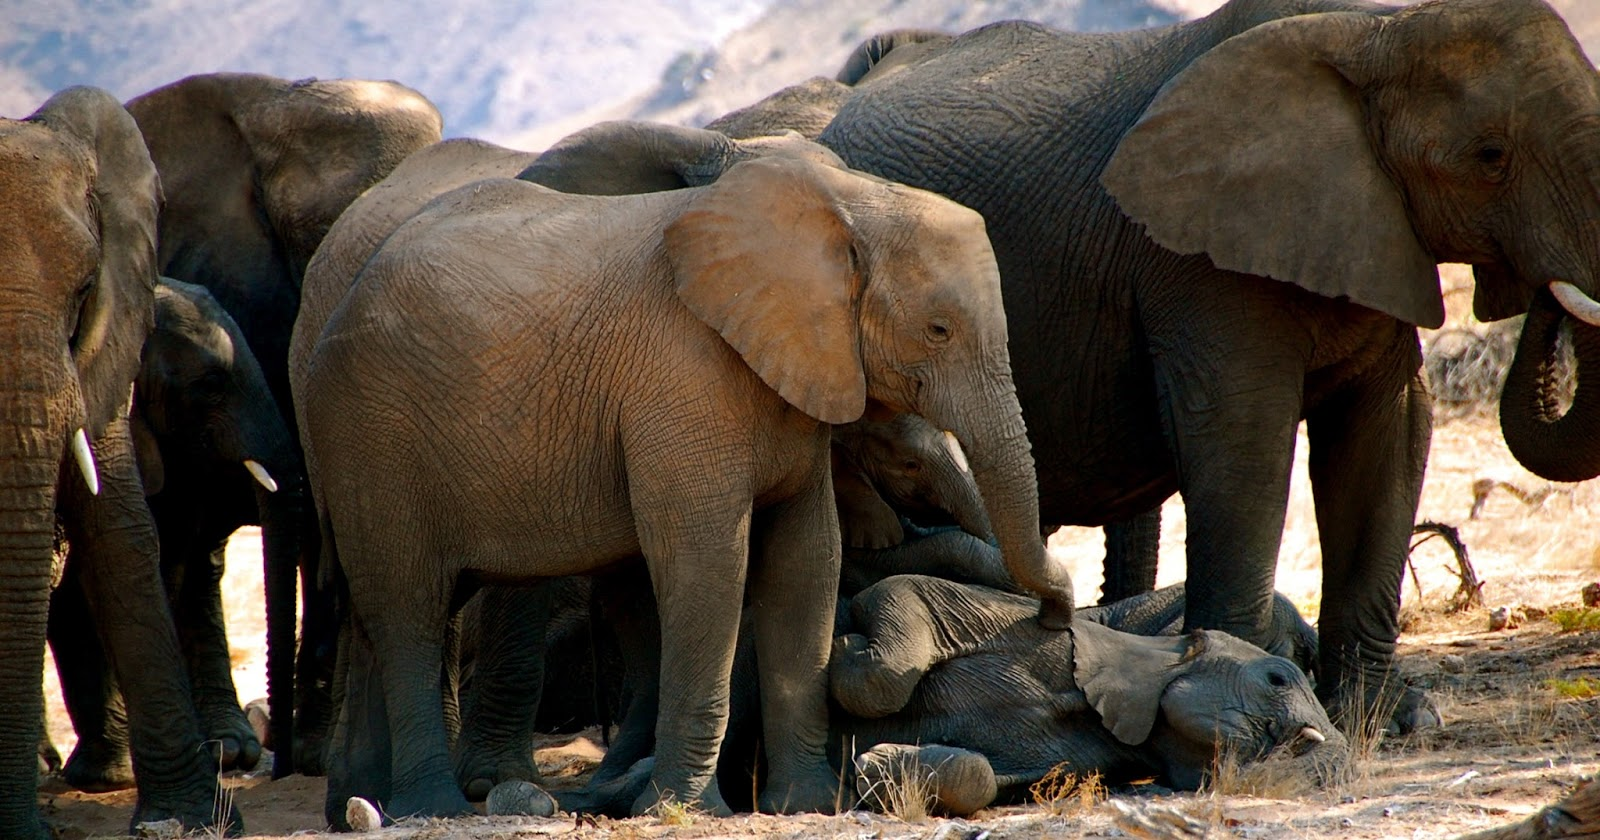 finding hope in a fractured world essays essays the heartache of elephants